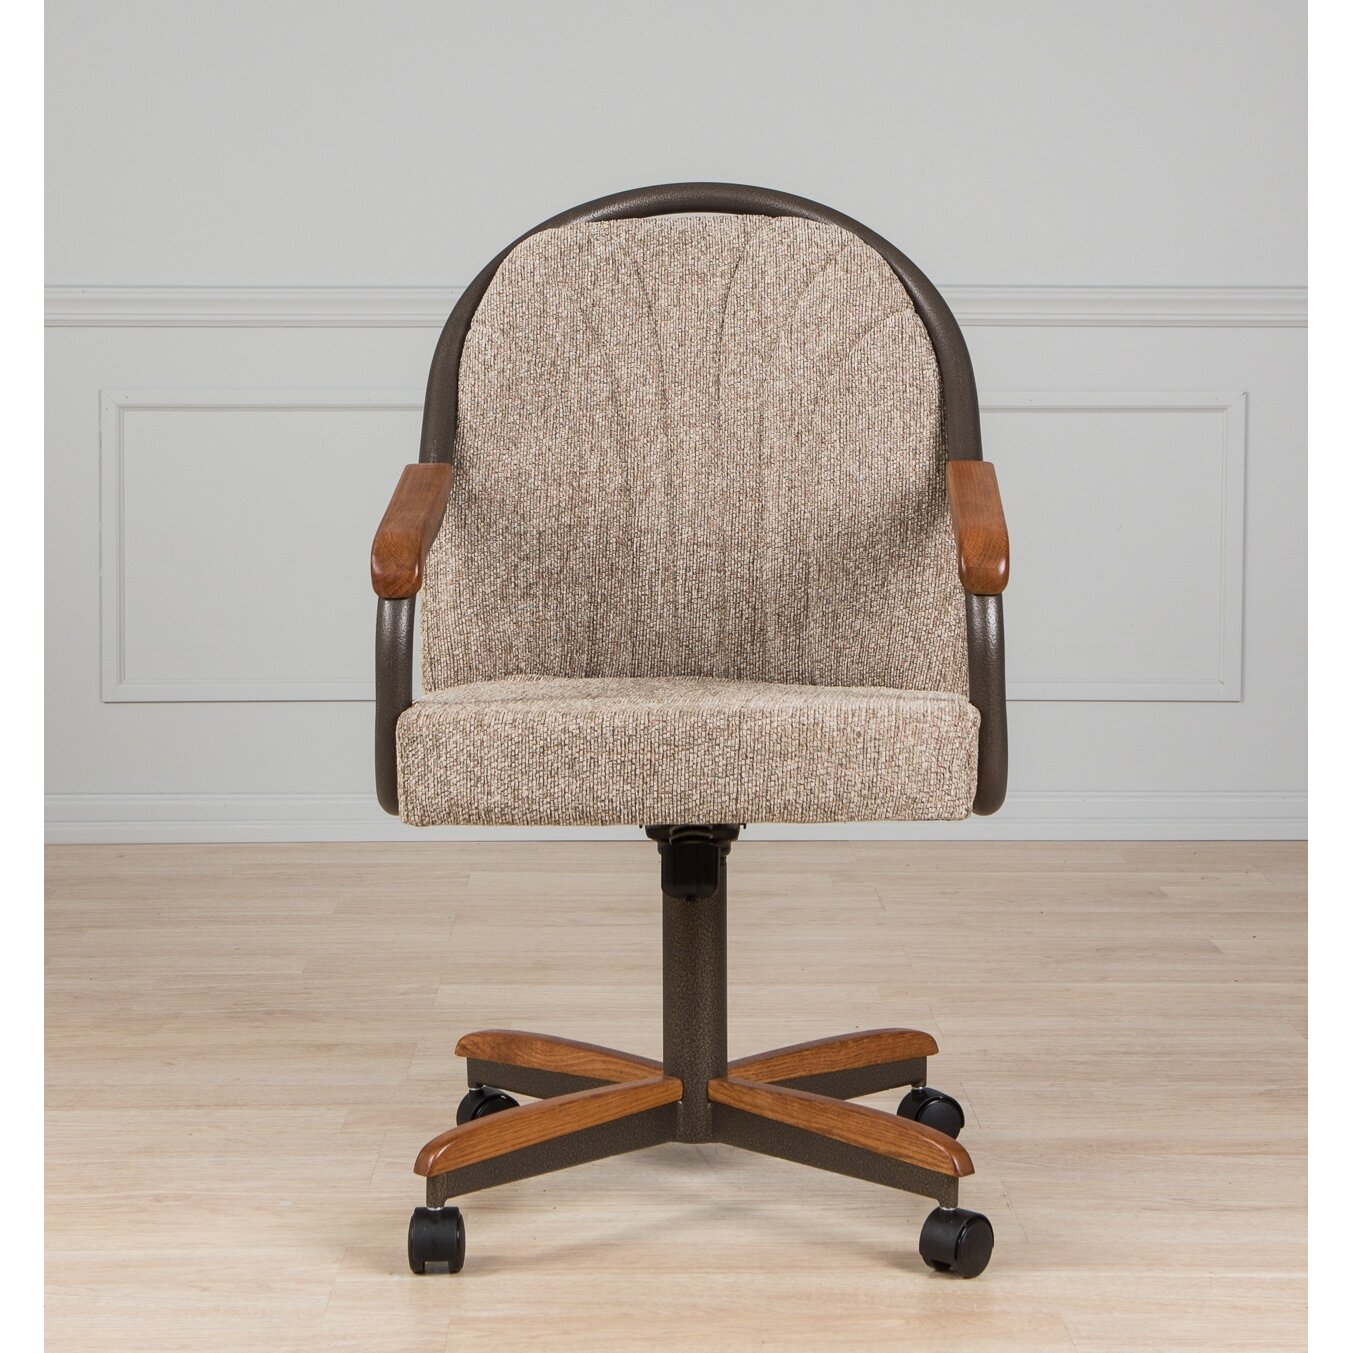 Shop Casual Dining Brown Cushion Swivel And Tilt Rolling: AW Furniture Arm Chair & Reviews